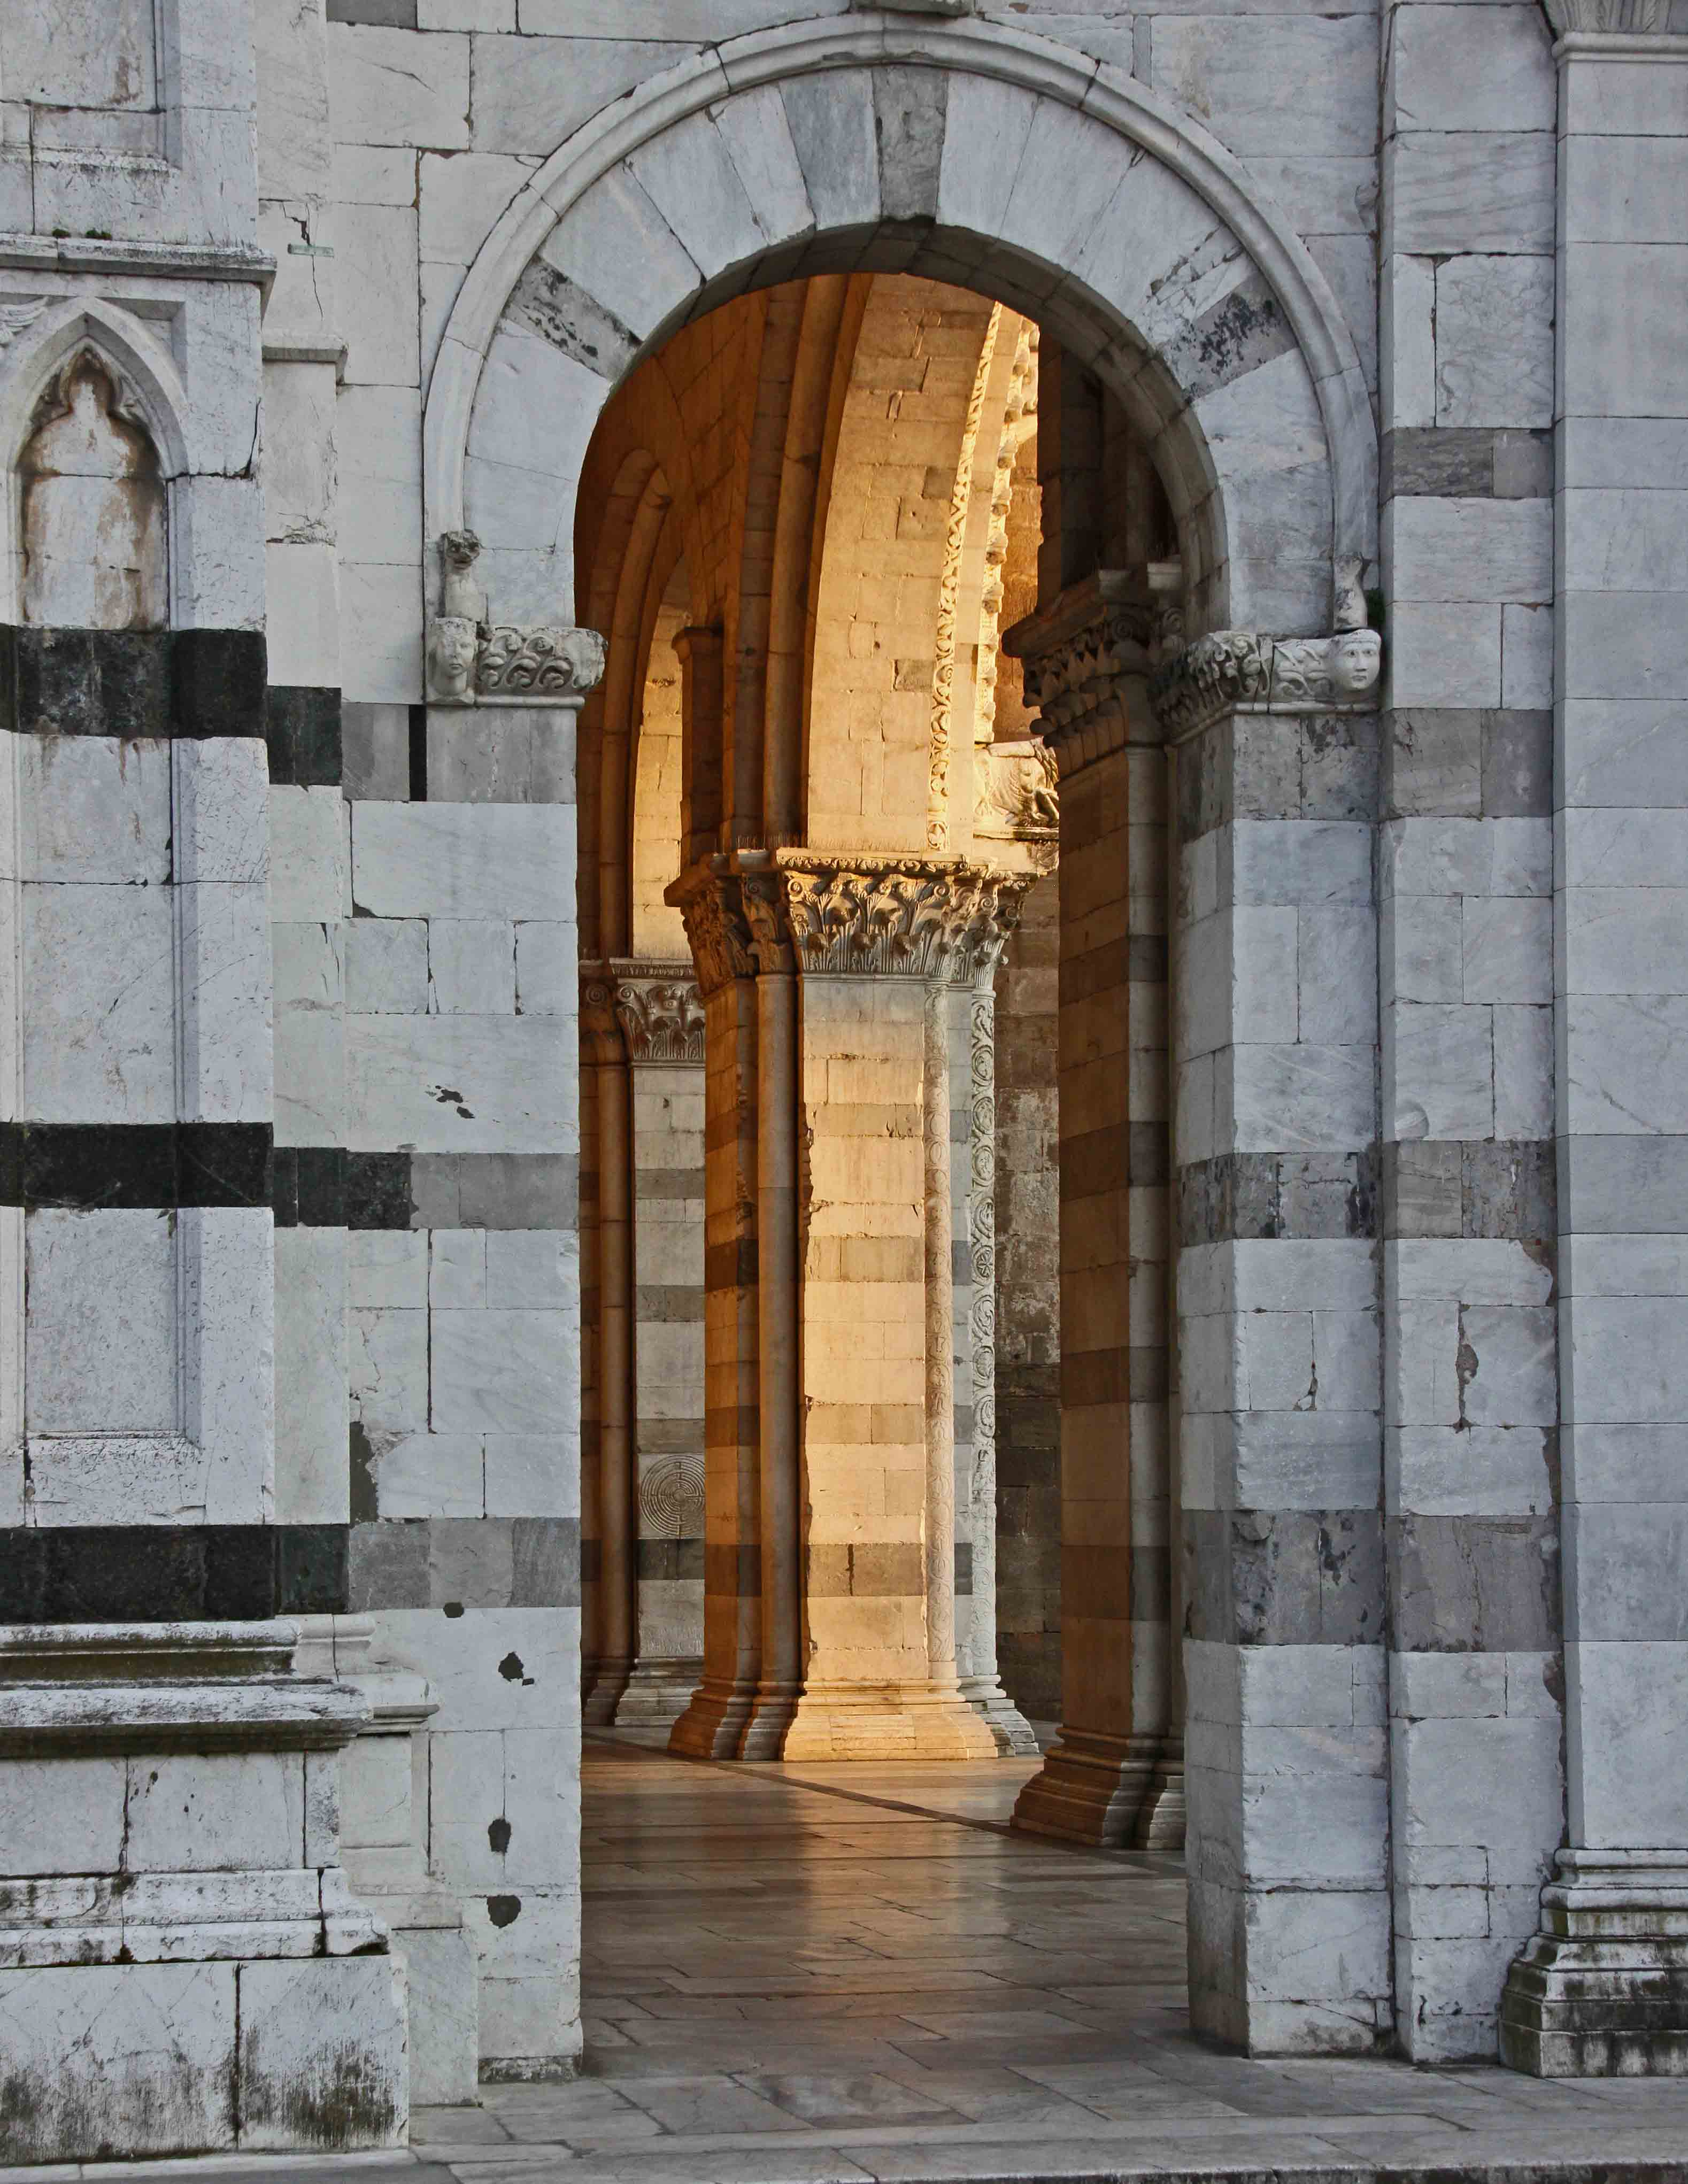 Sunset on the Church Arch - Luca, Italy